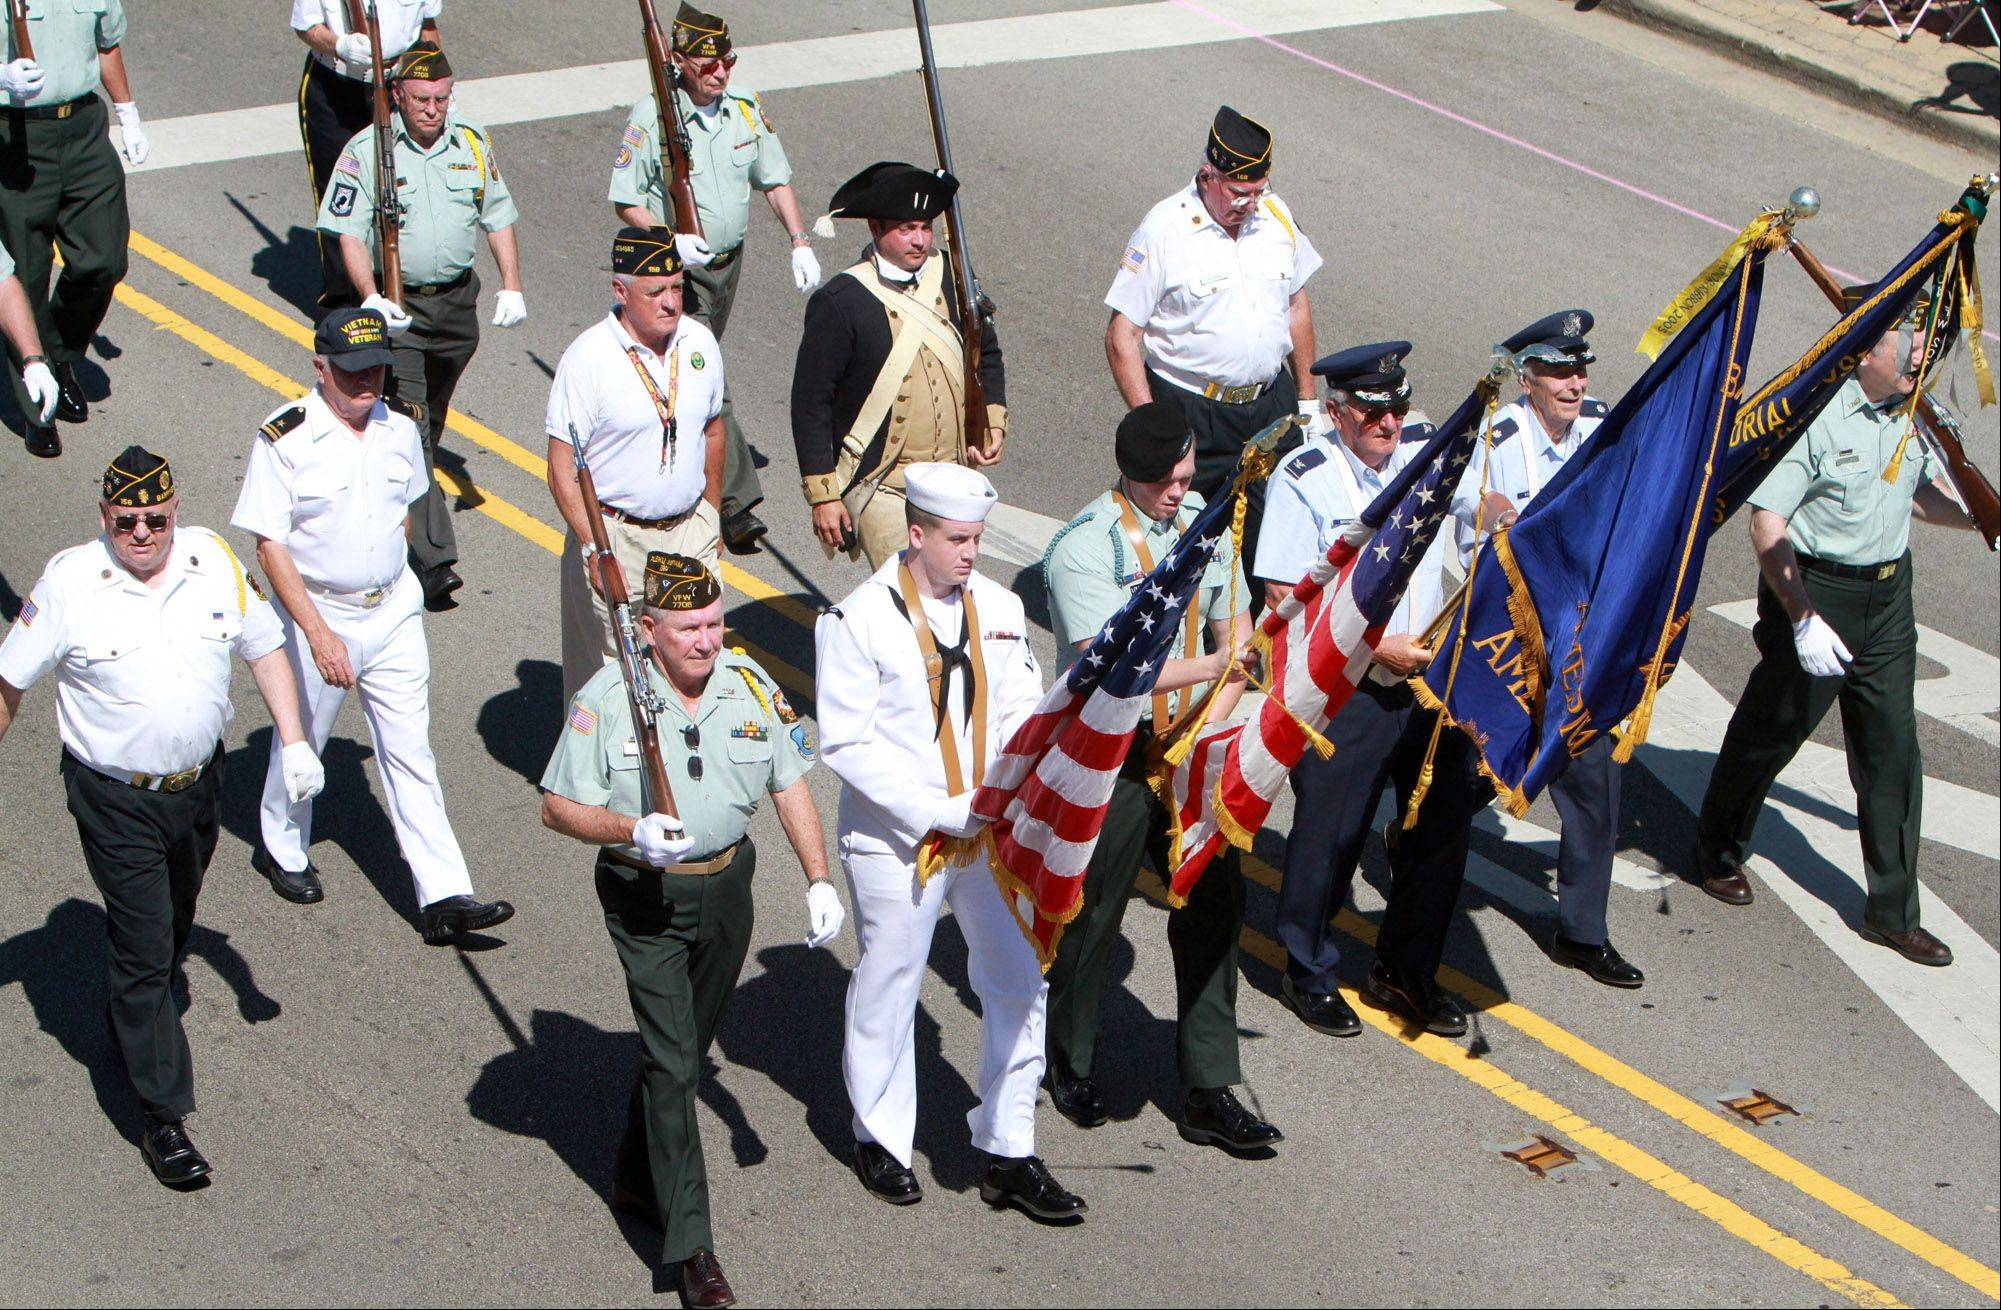 Color guard leads the way in the Barrington Fourth of July parade traveling east on Main Street on Monday.